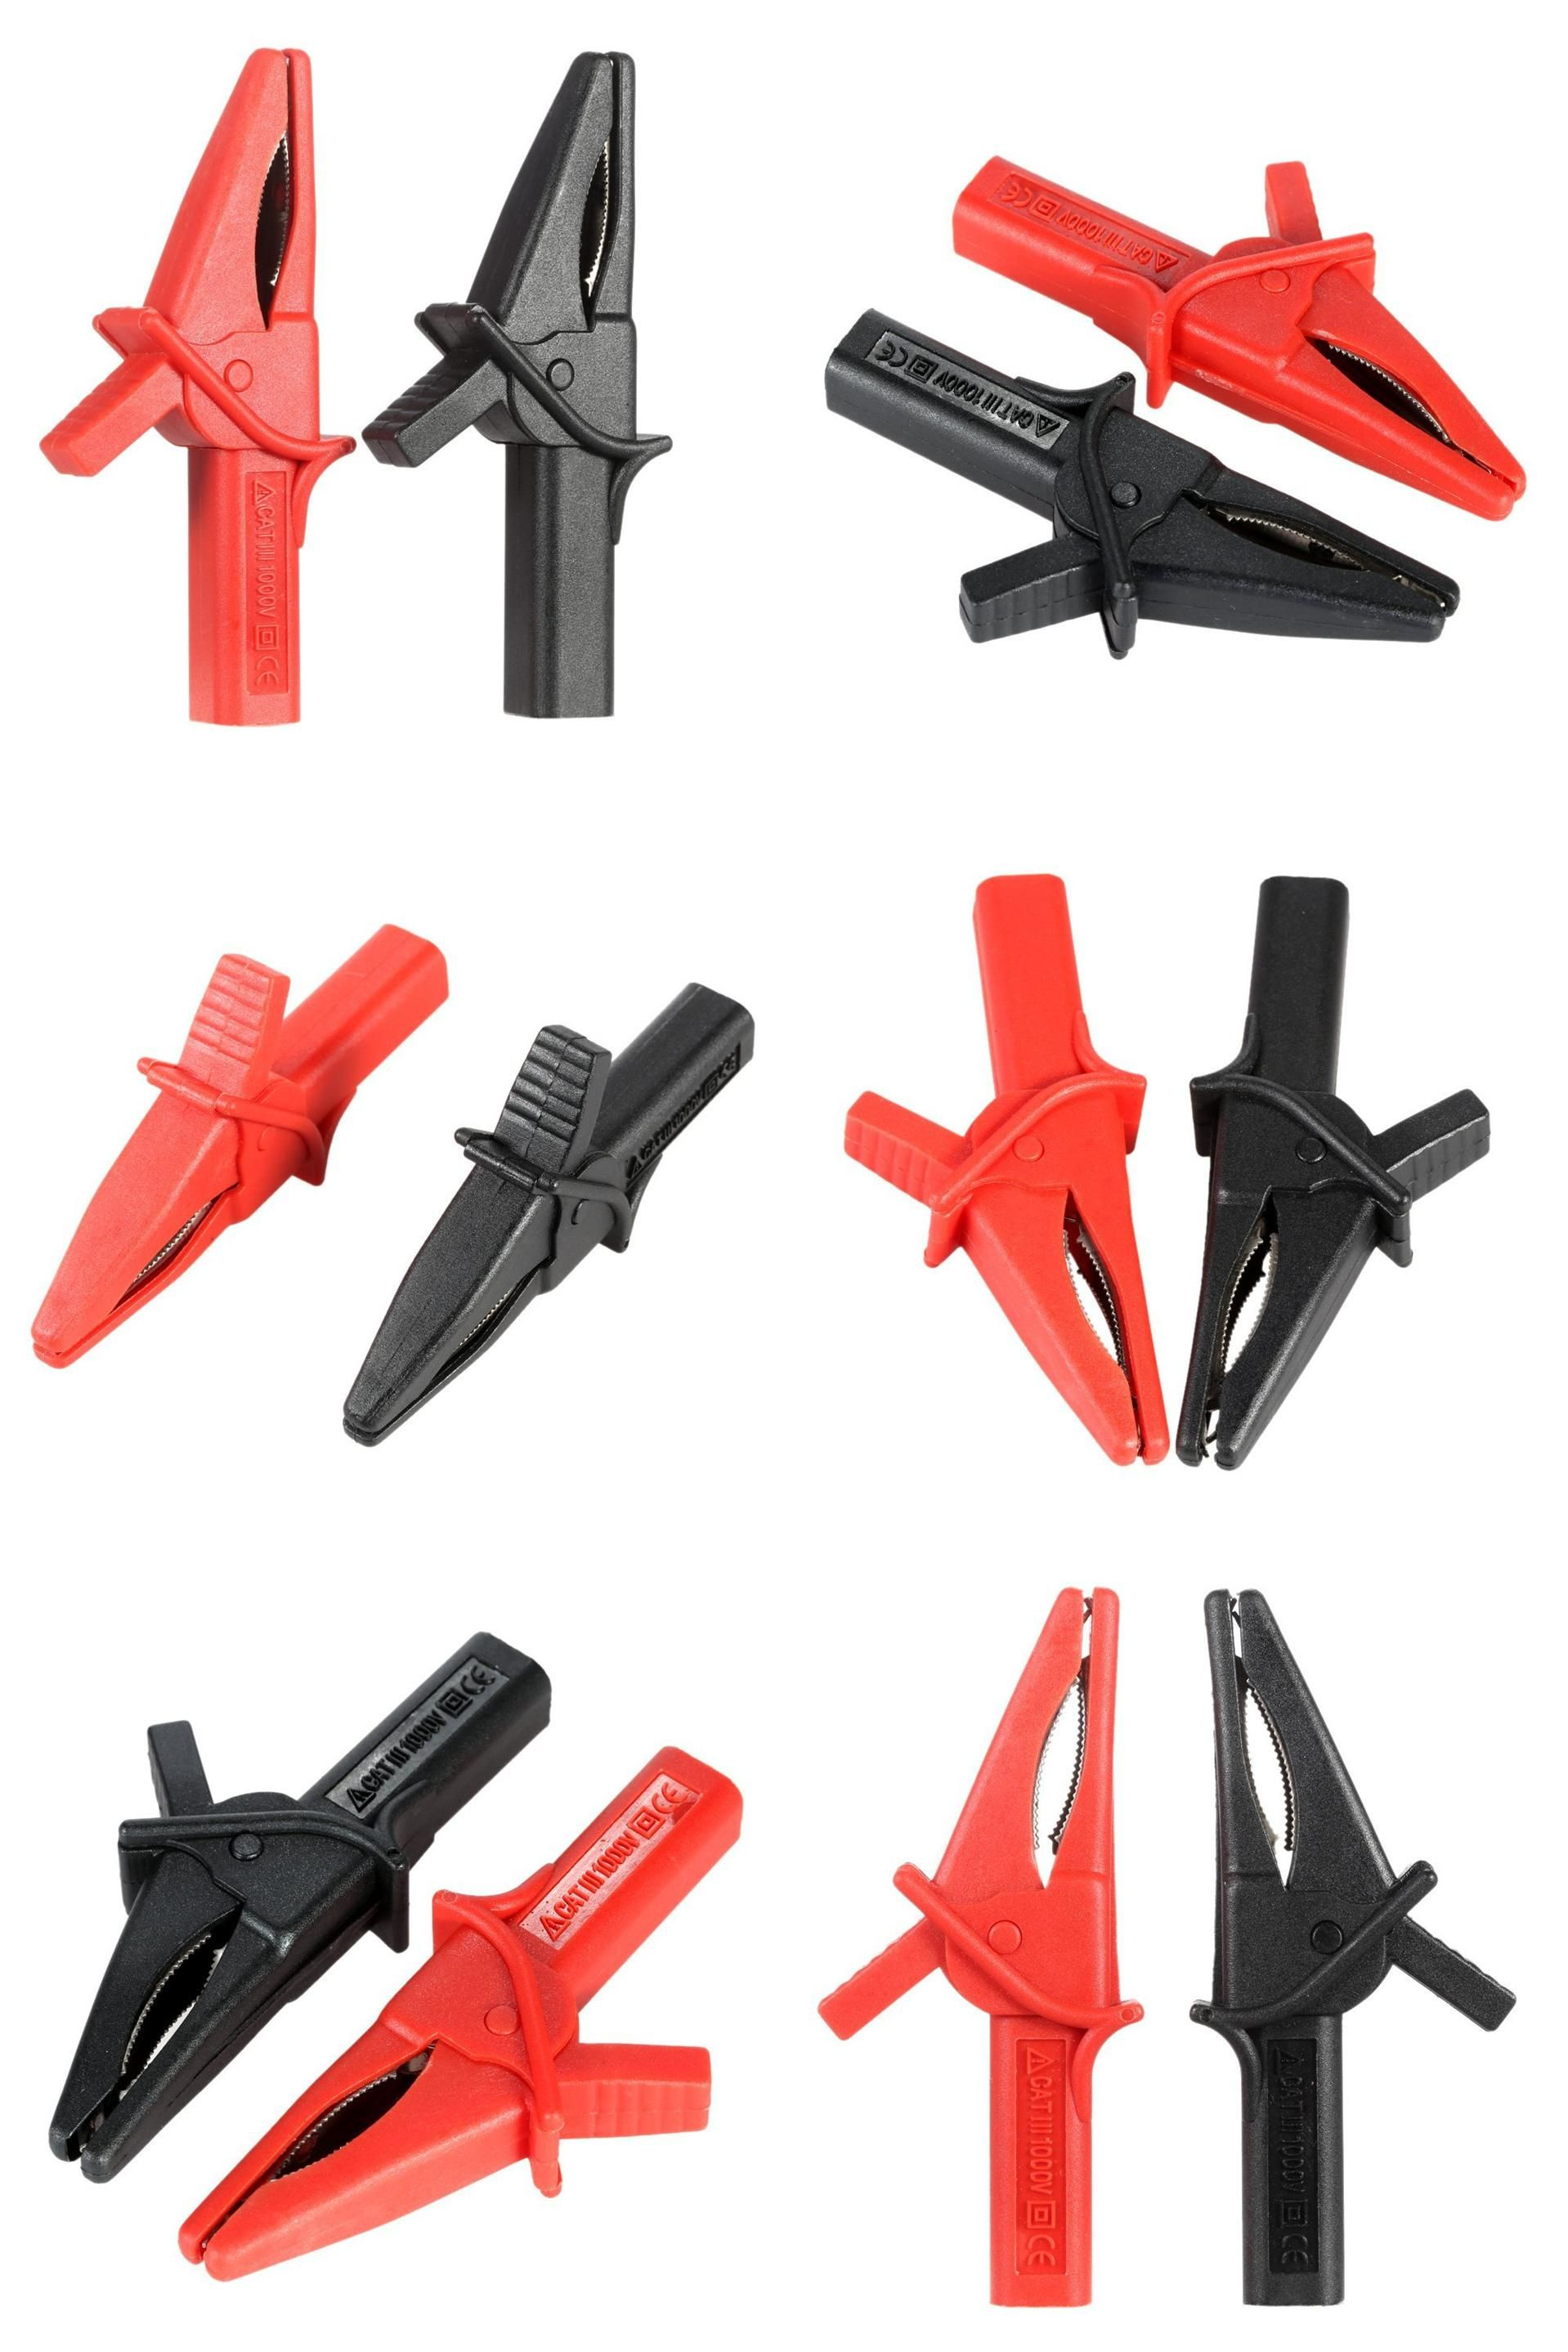 NEW Hantek HT18A fitting of DSO3064 2pcs Large Dolphin Gator Clips Red+Black